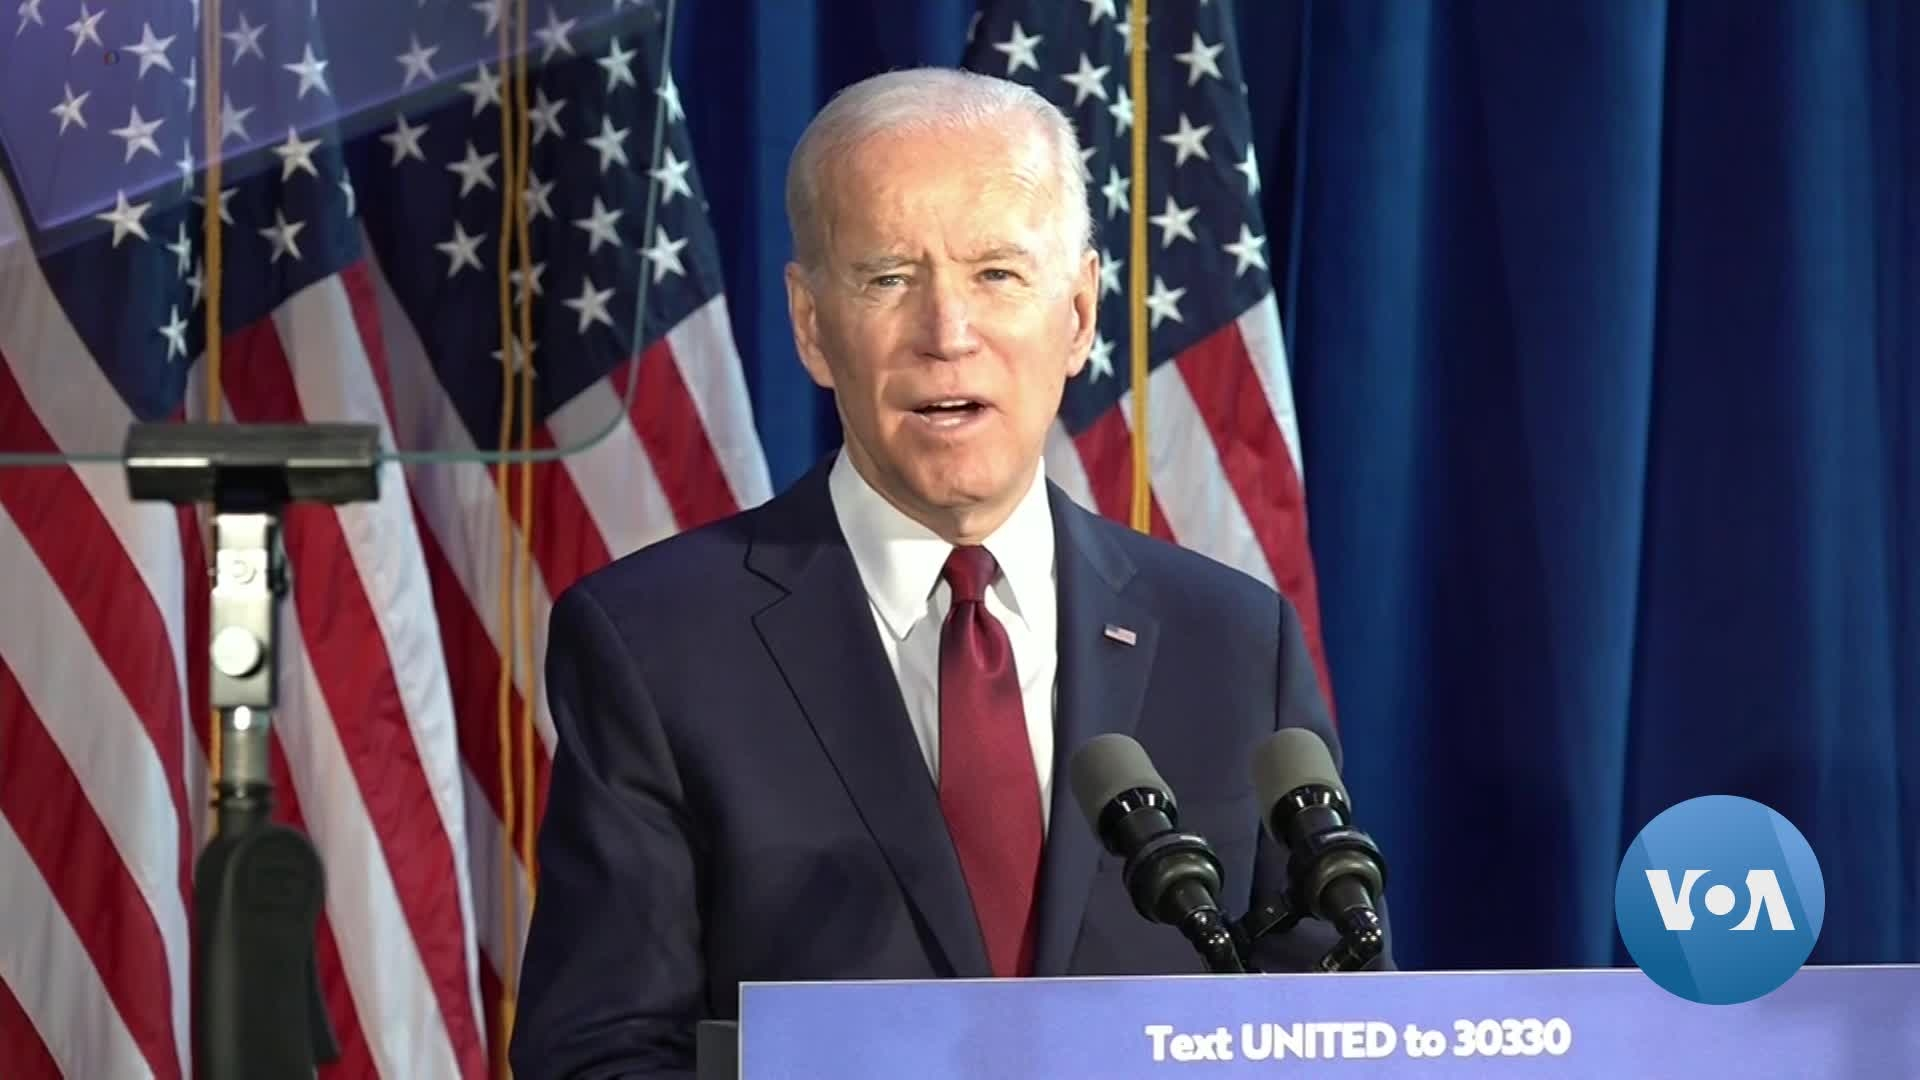 Biden Lashes Out at Trump as 'Dangerously Incompetent' Over Soleimani Killing